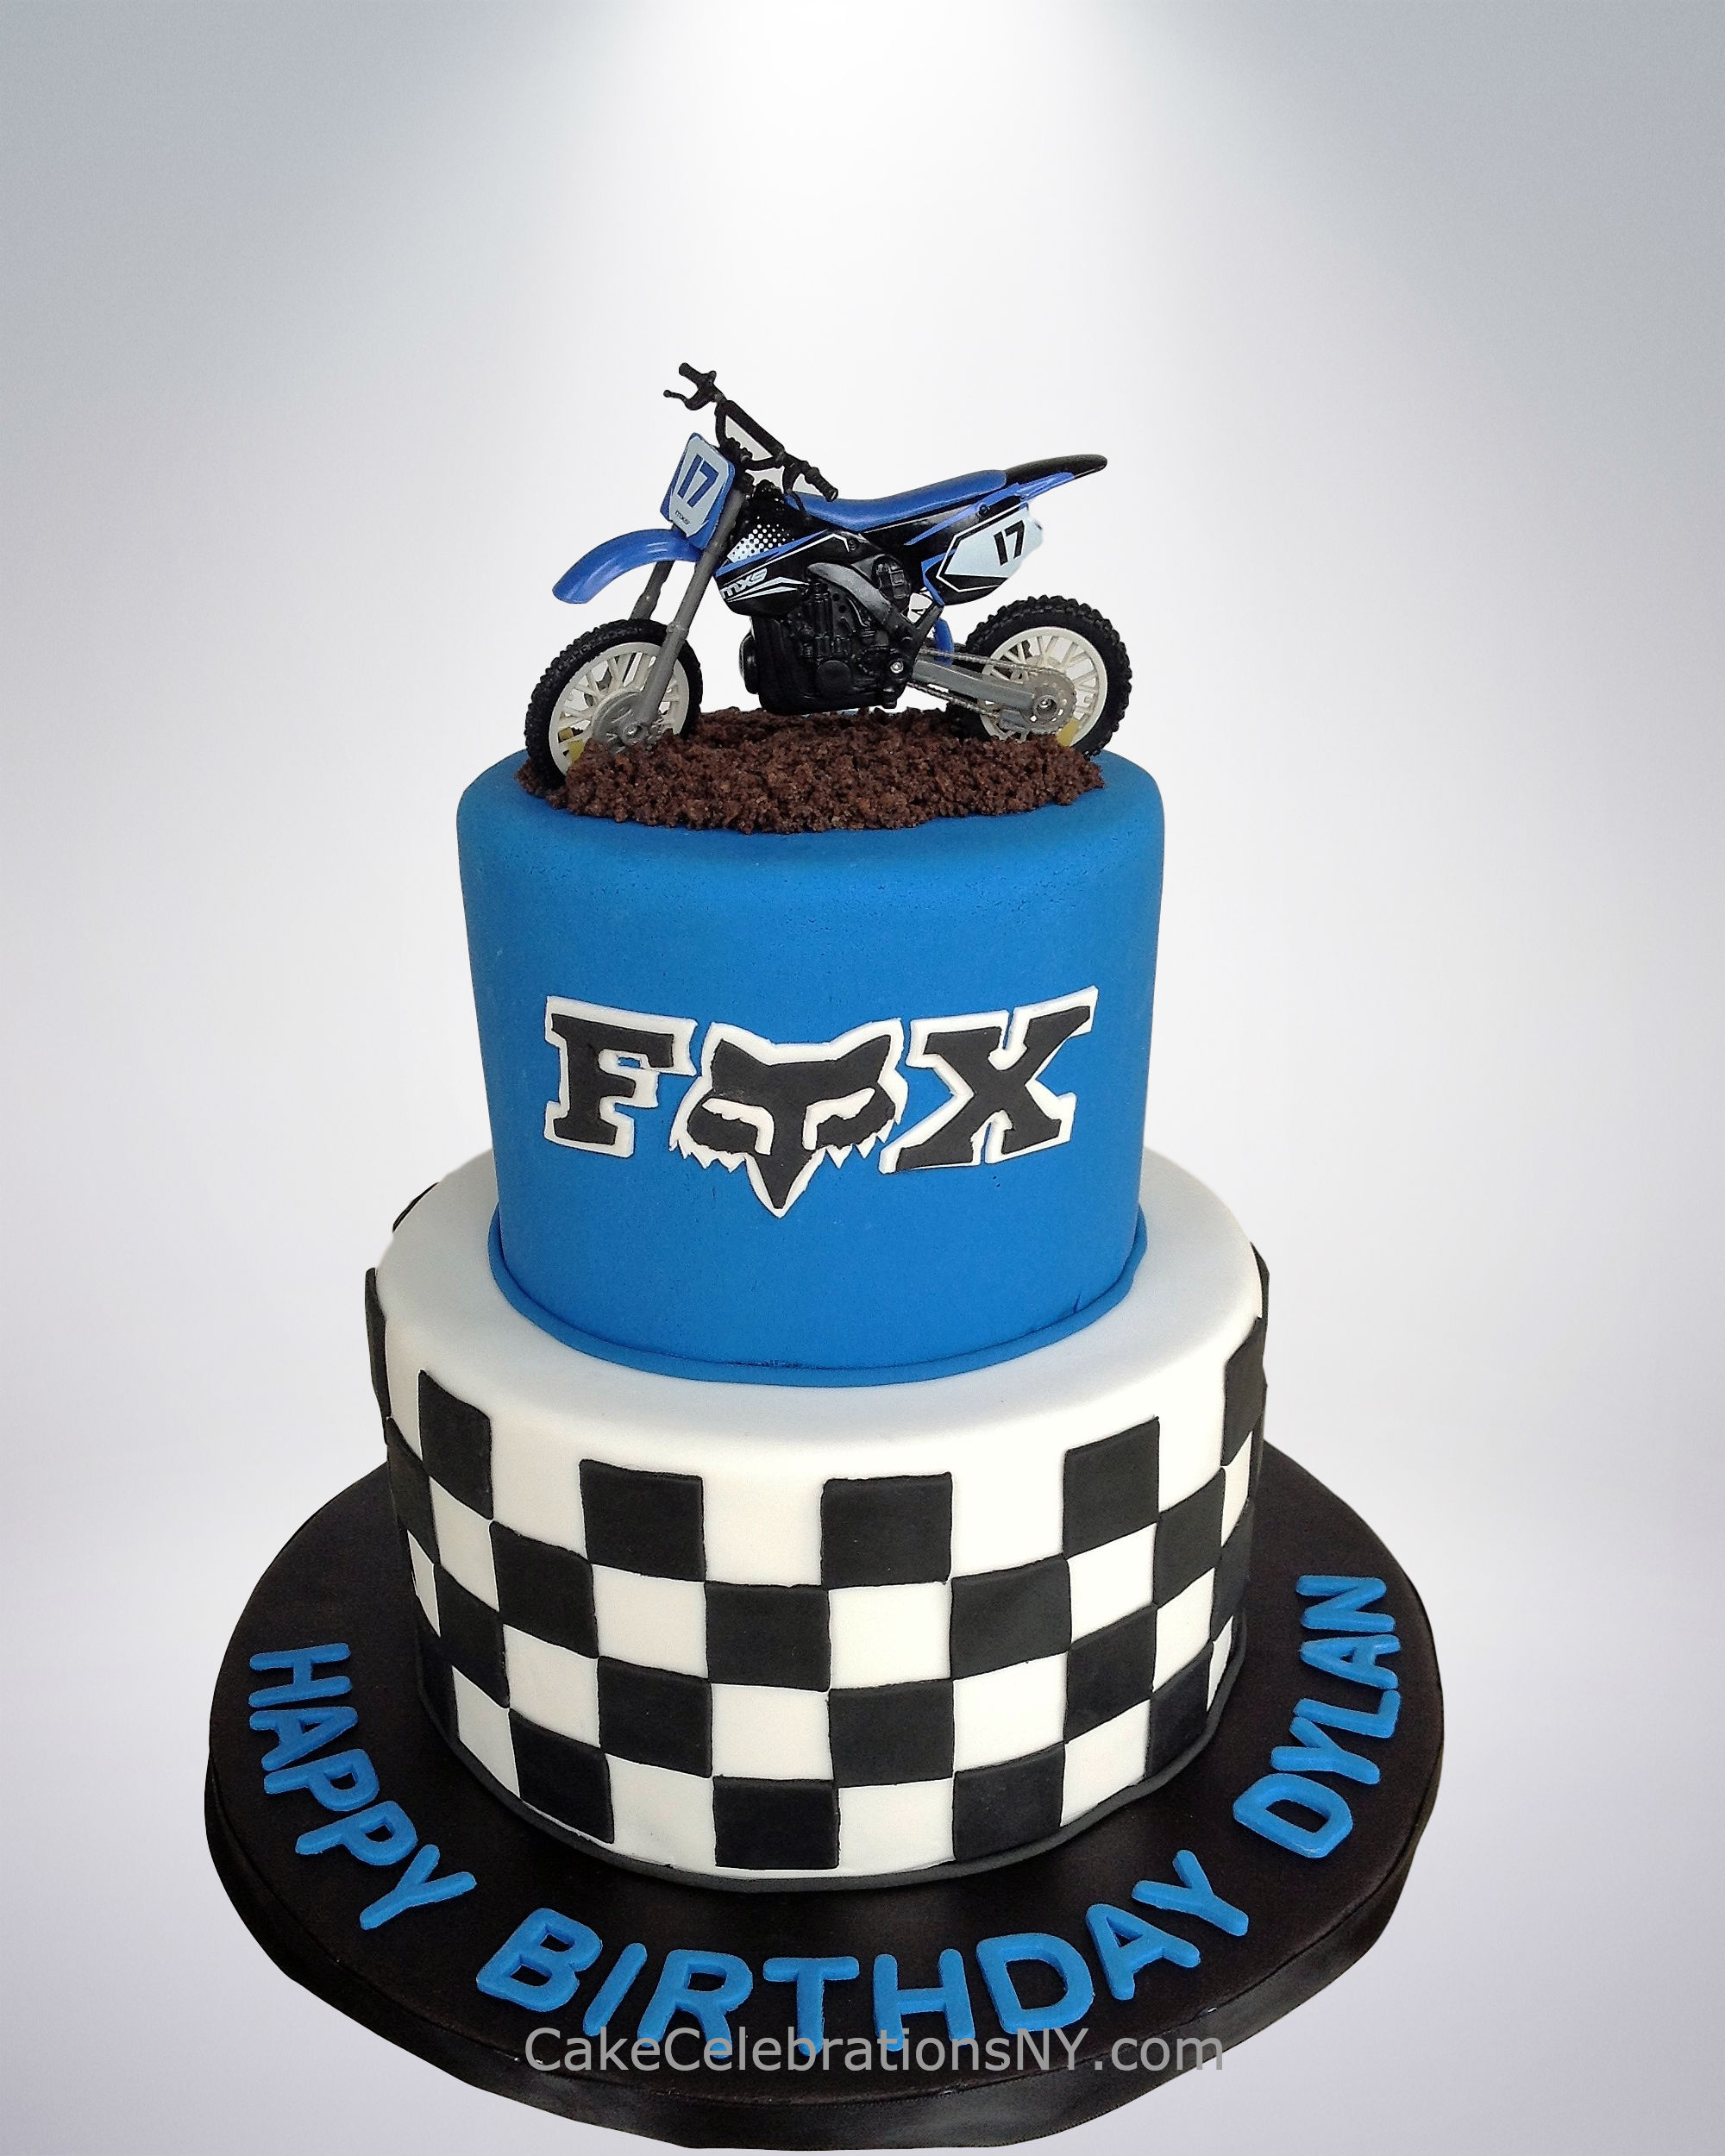 Dirt Bike Cake Cake Celebrations